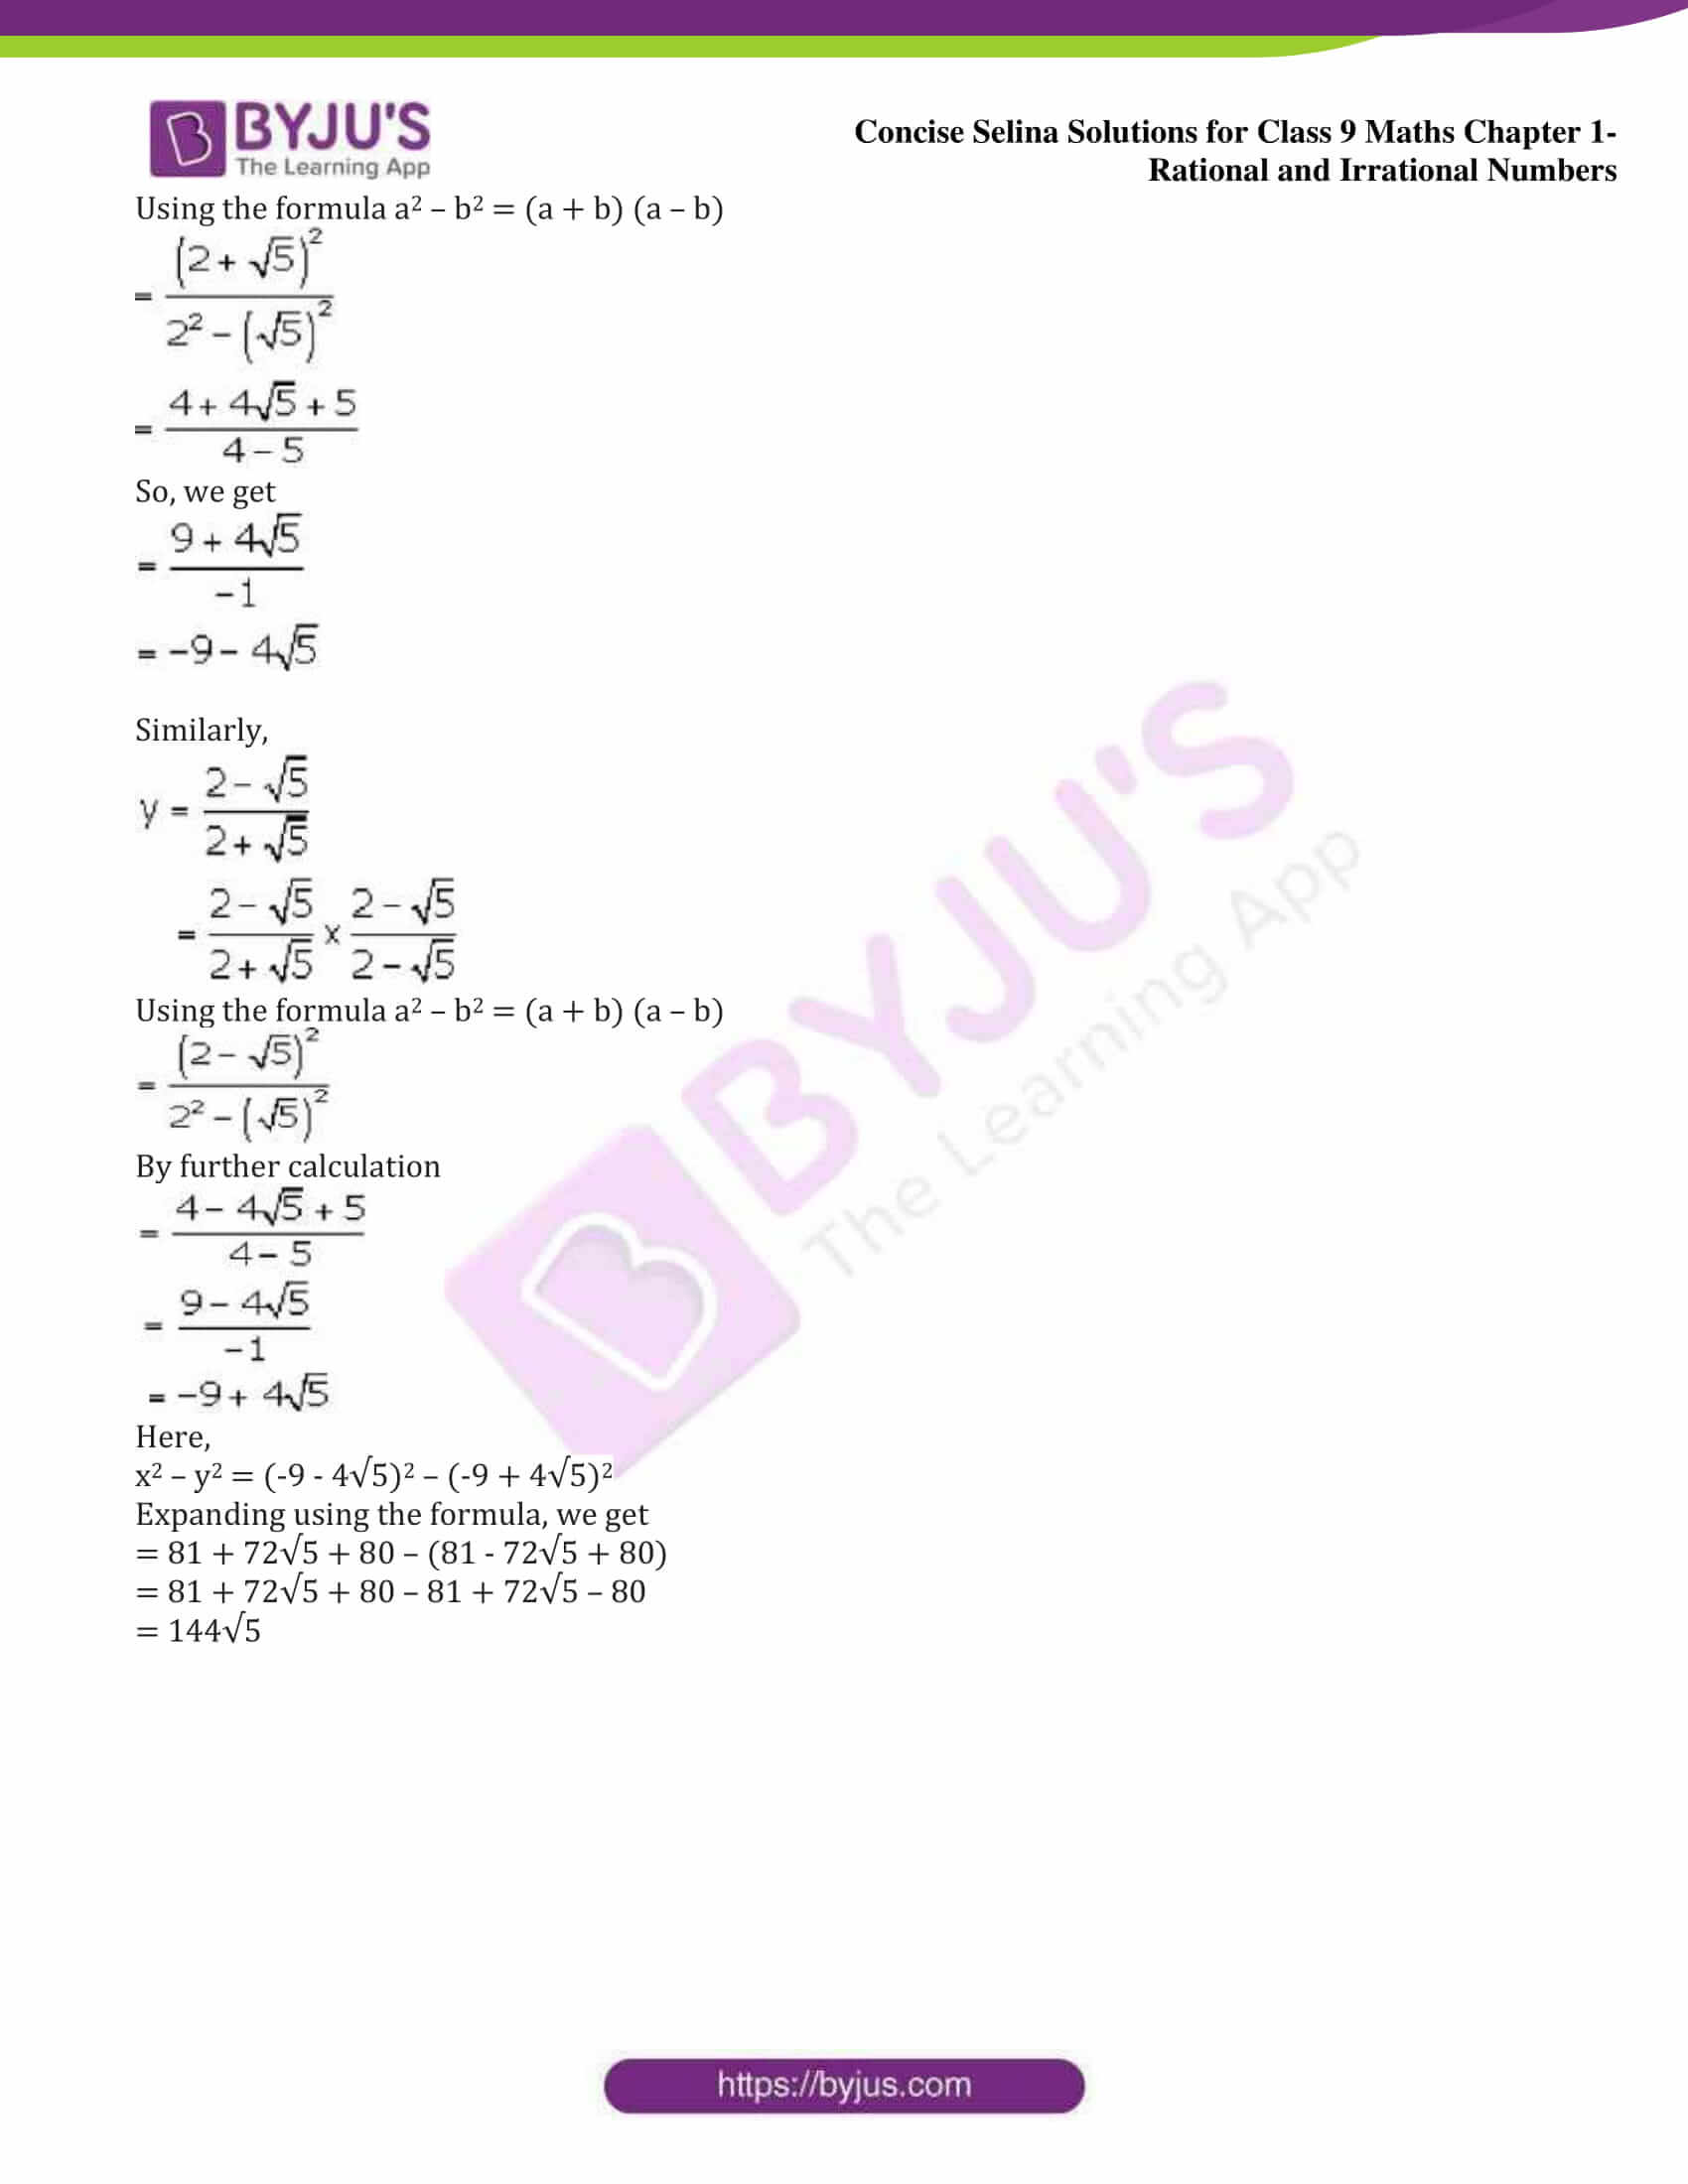 icse class 9 maths may13 selina solutions chapter 1 rational and irrational numbers 32